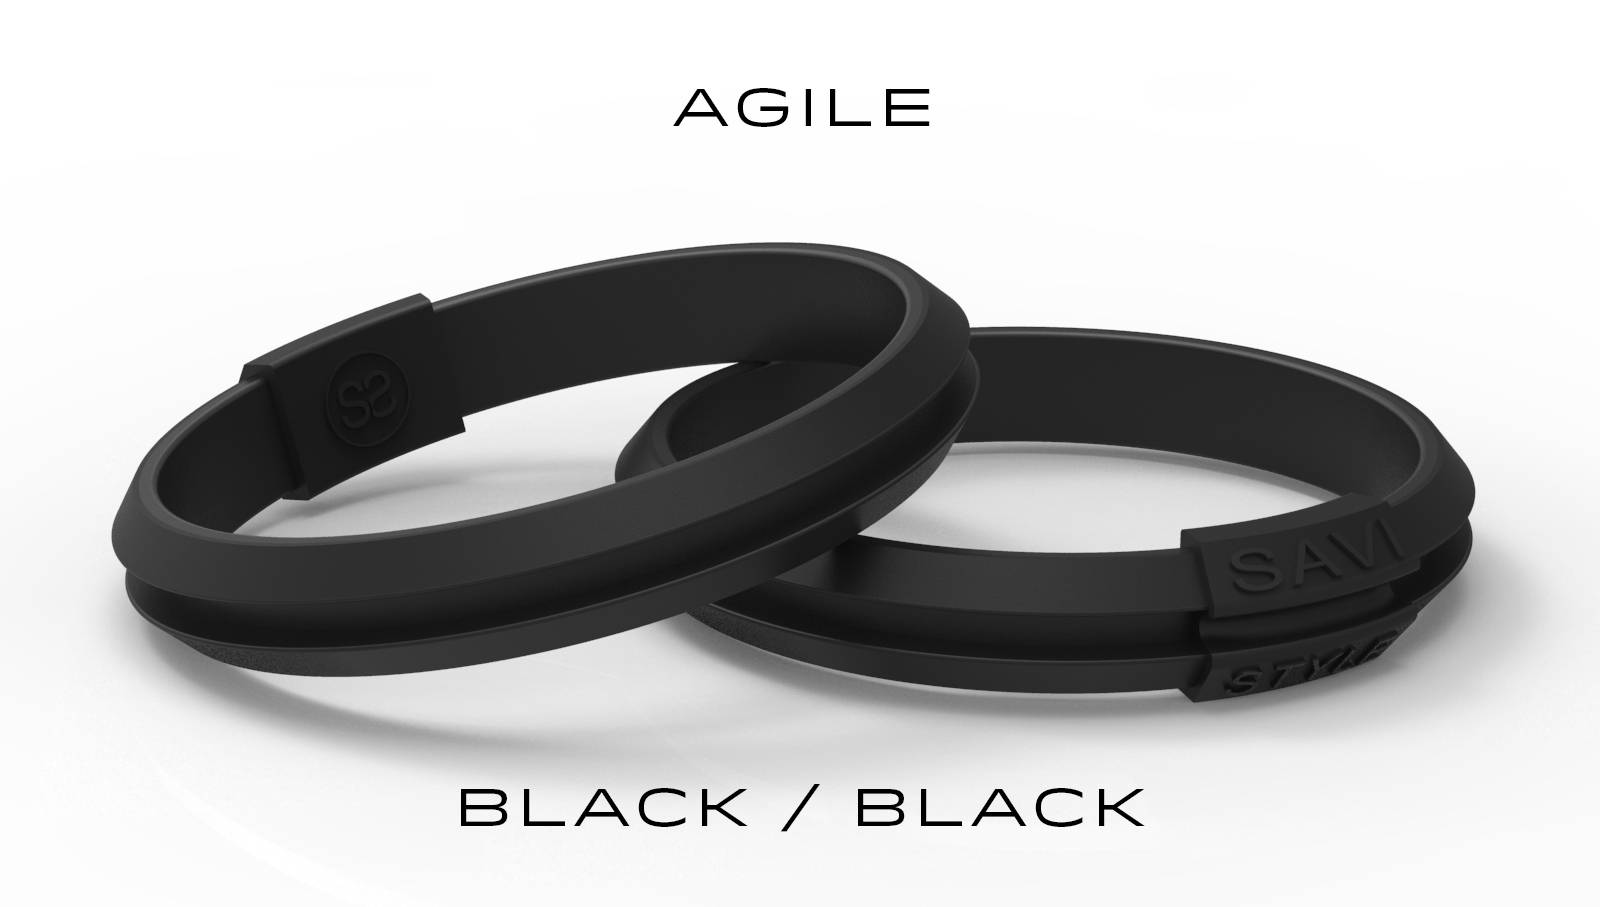 savi sleek agile black by savistyle hair tie bracelet stacked view